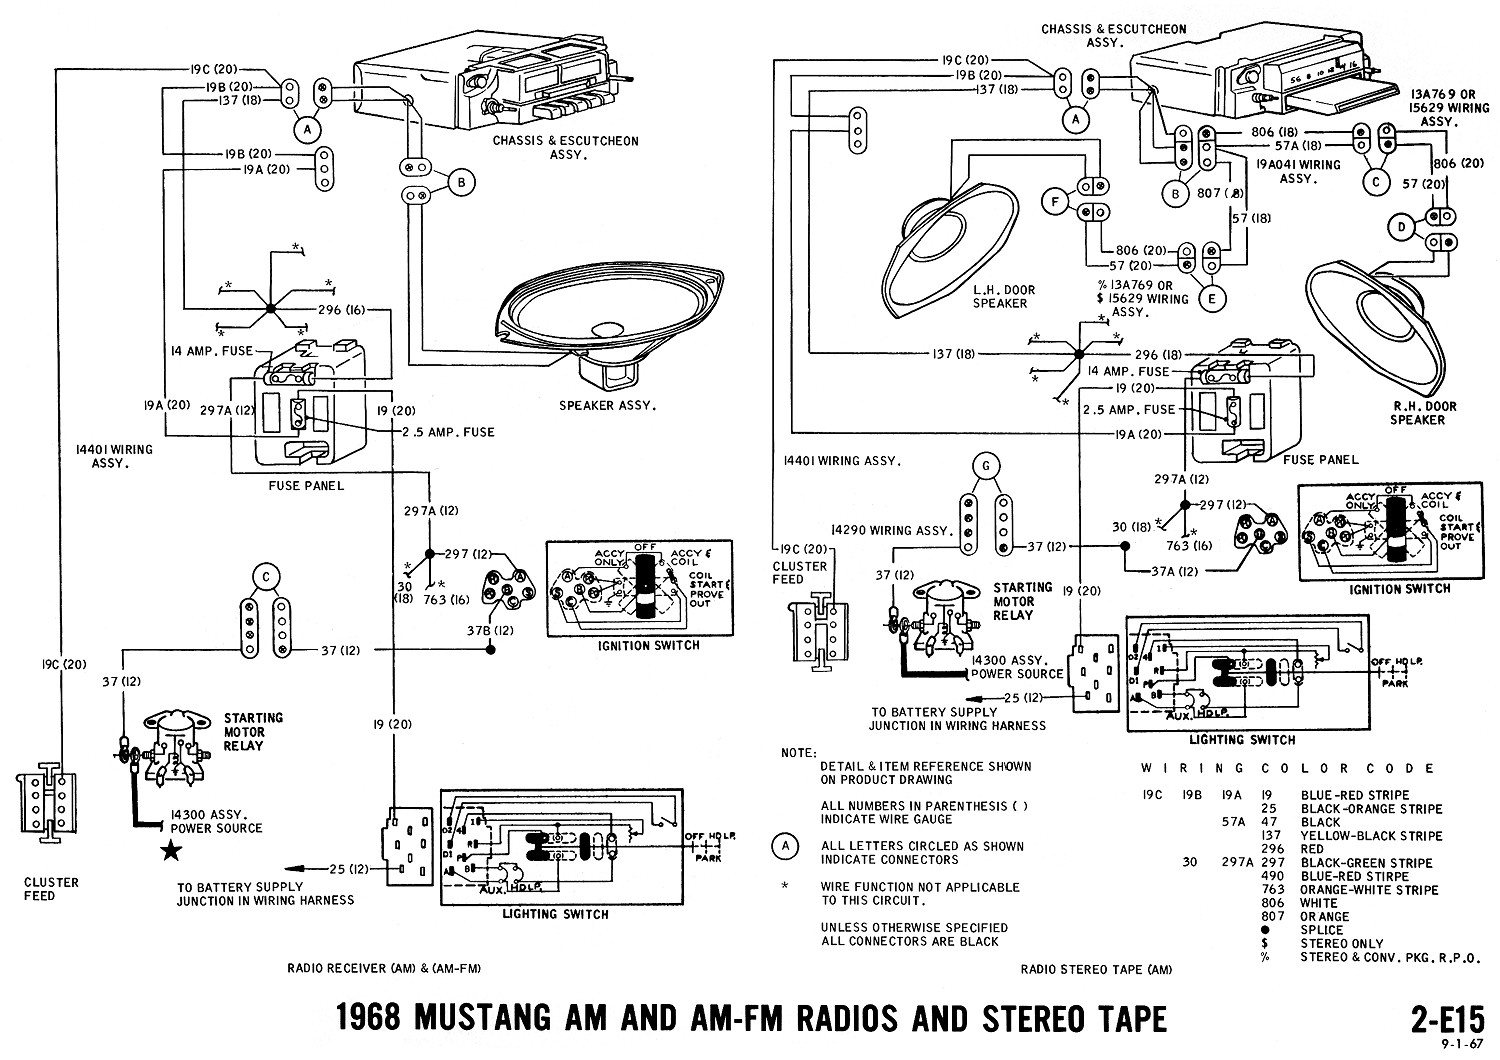 1968 mustang wiring diagrams evolving on 69 chevelle dome light wiring diagram  [ 1500 x 1060 Pixel ]